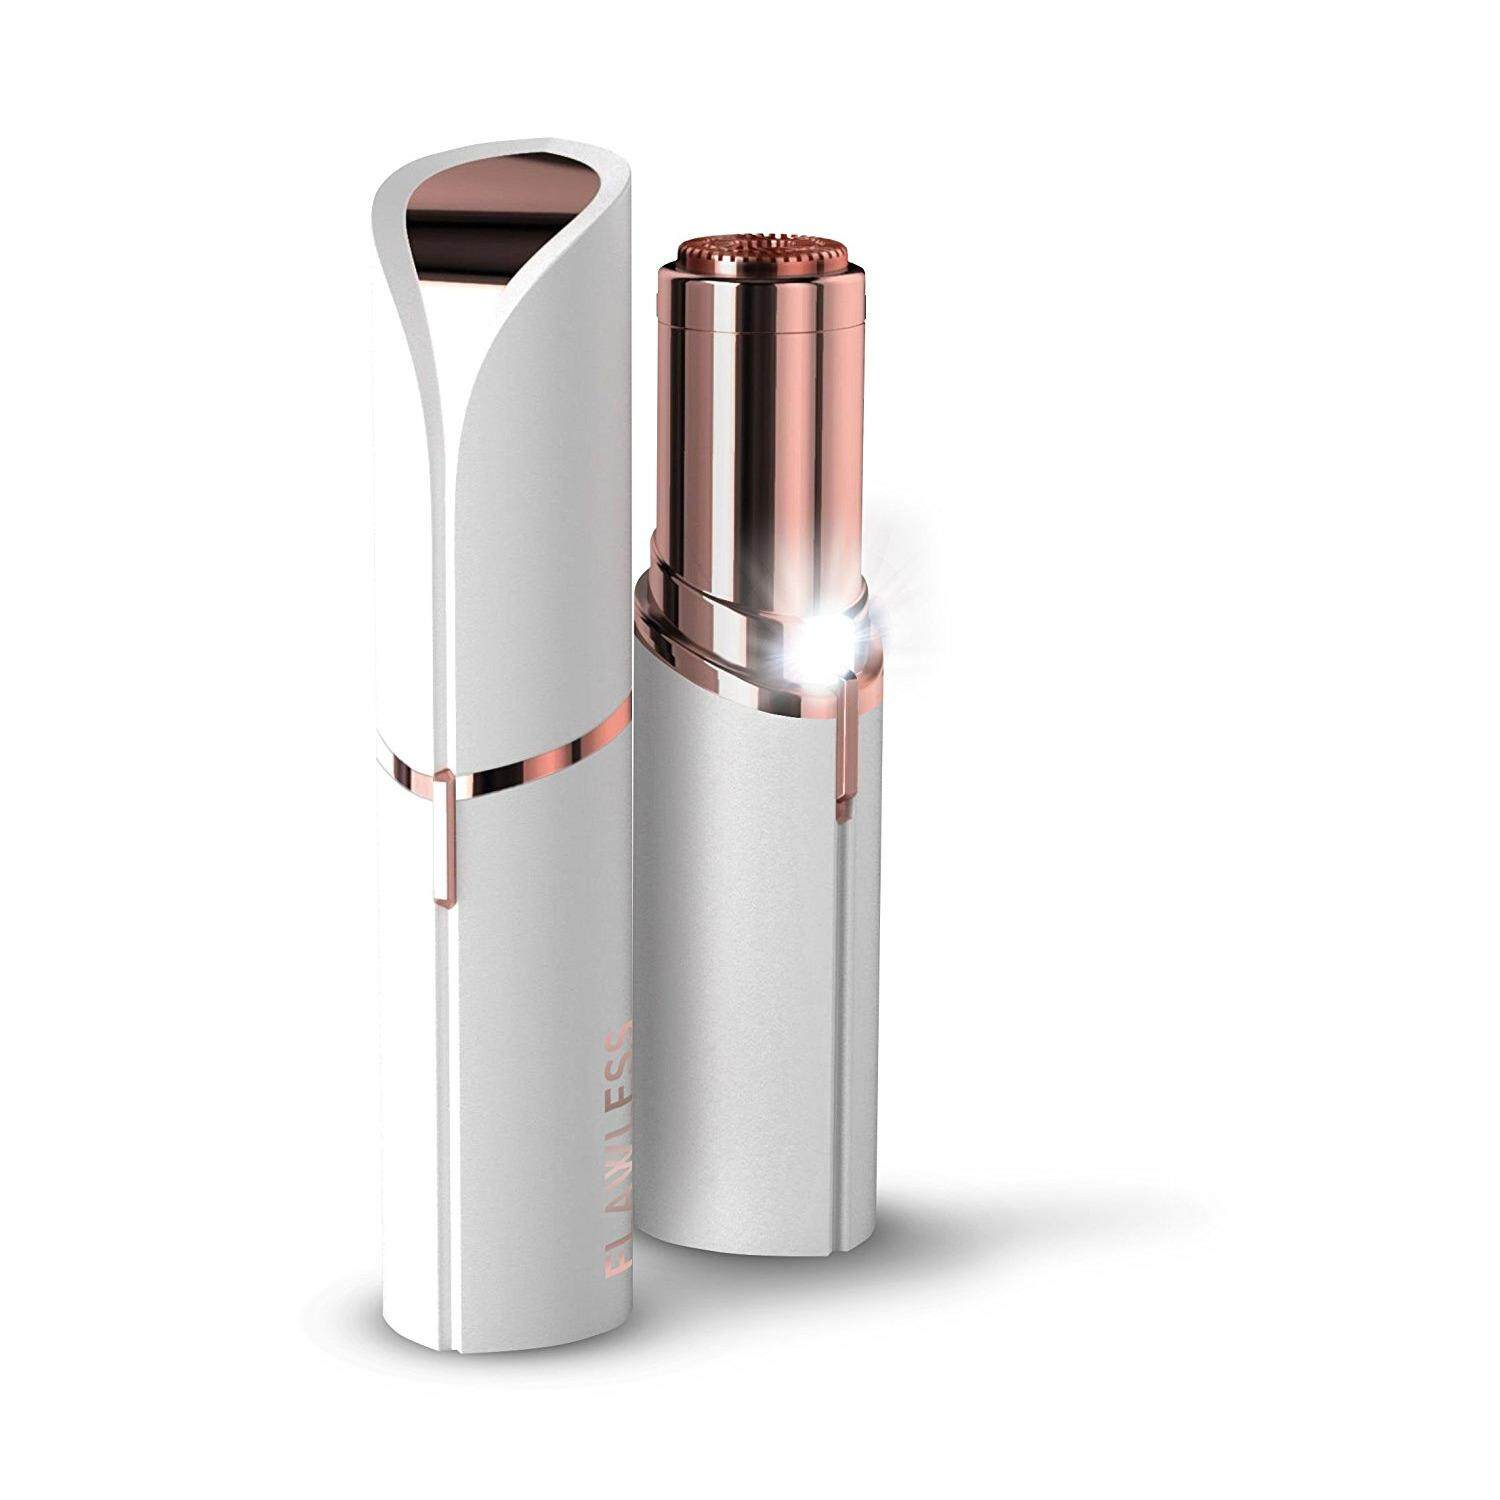 Finishing Touch Flawless Women's Painless Hair Remover, Blush/Rose Gold - intl